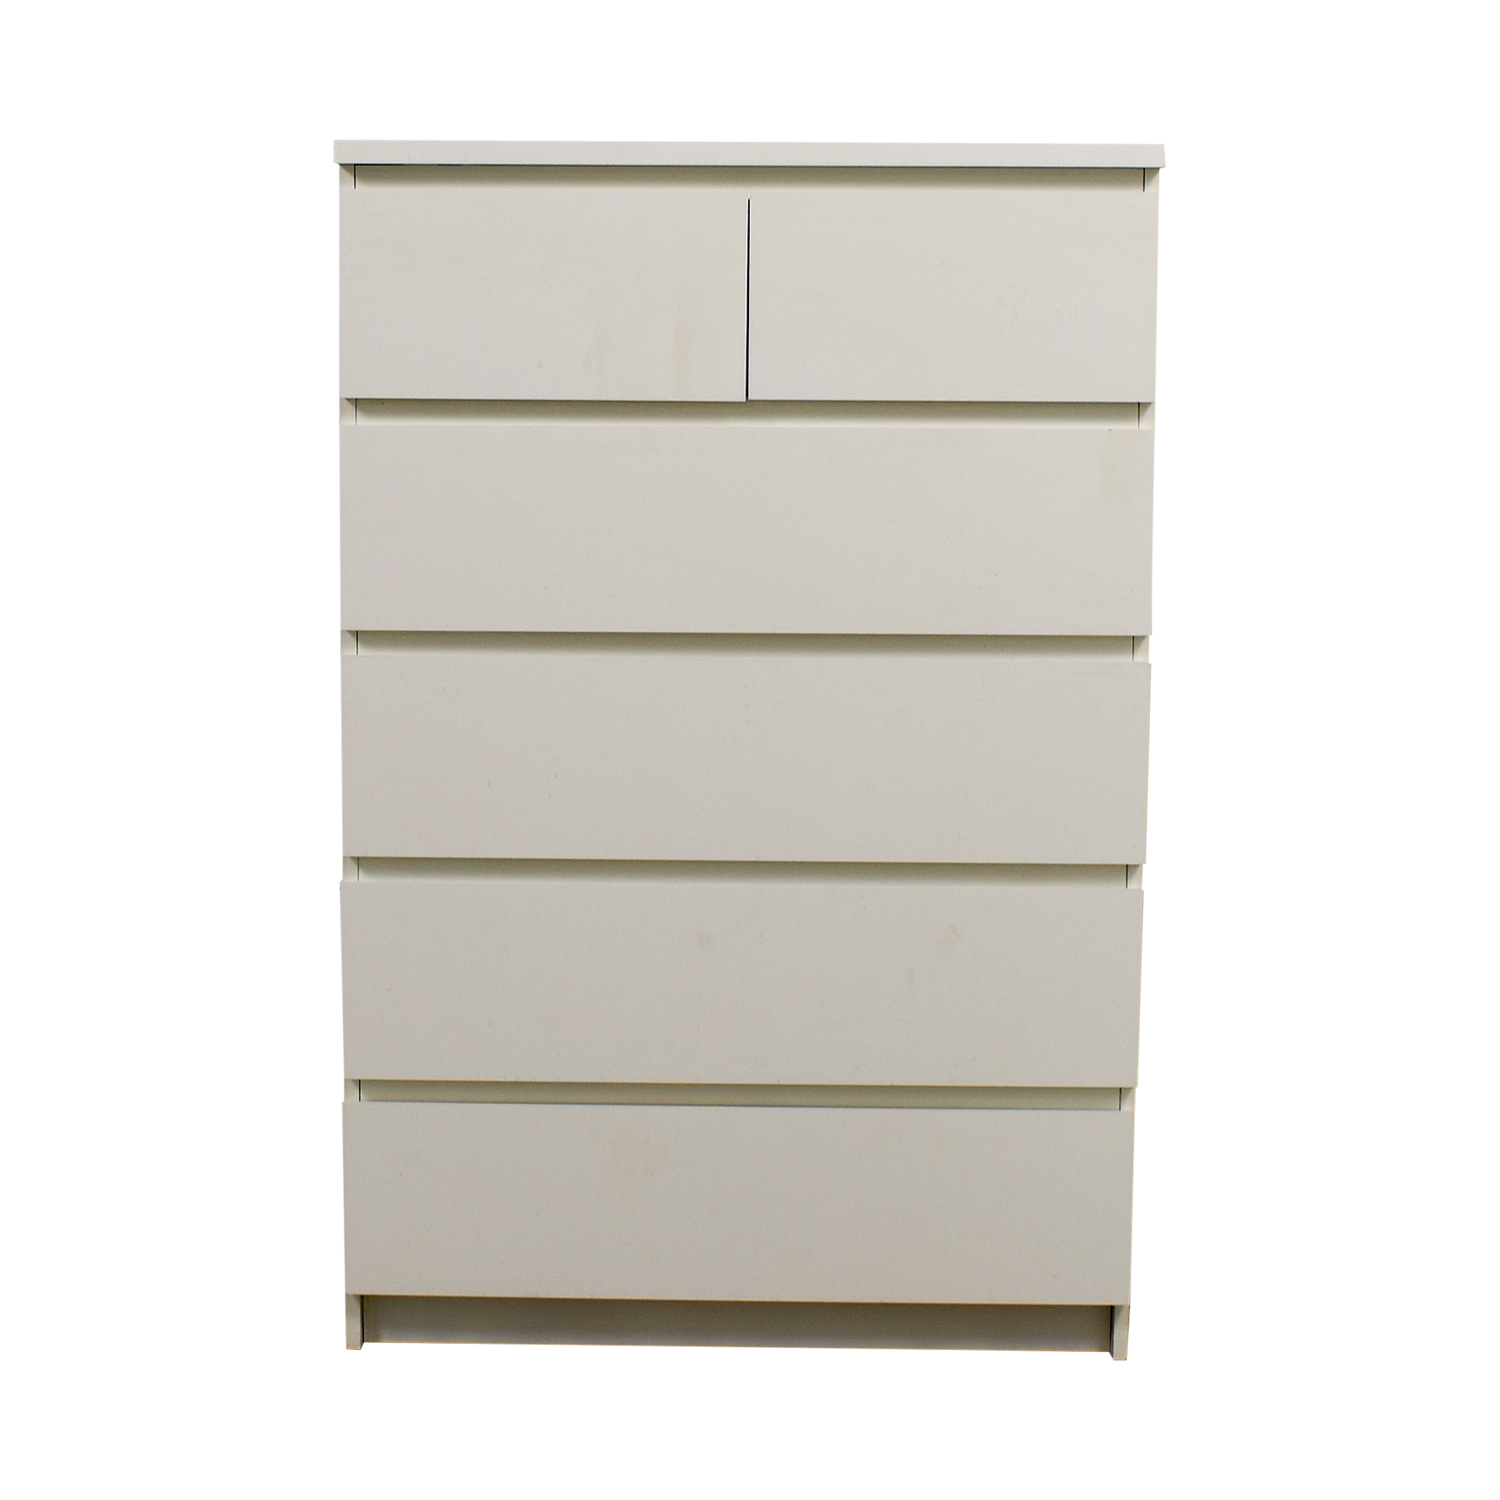 White Six-Drawer Dresser second hand